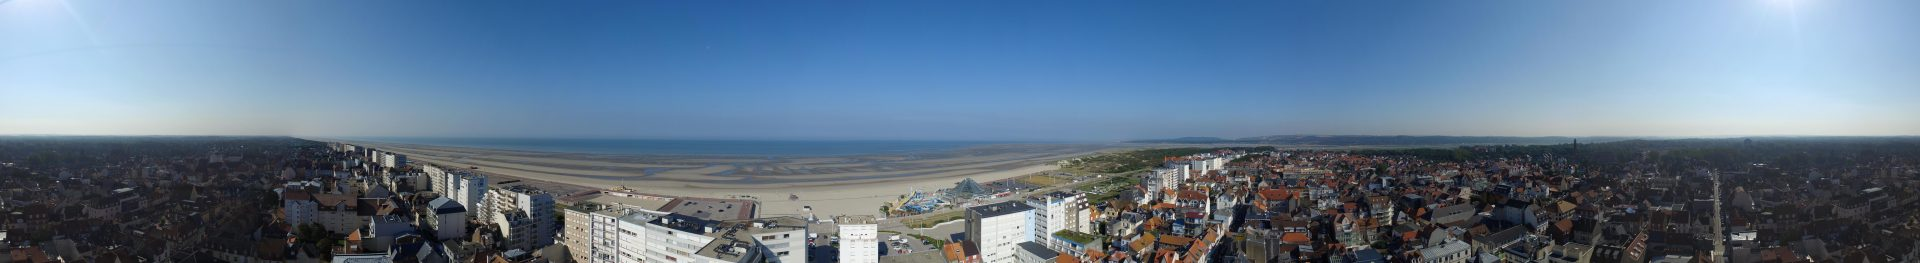 Photo panoramique Le Touquet Paris-Plage